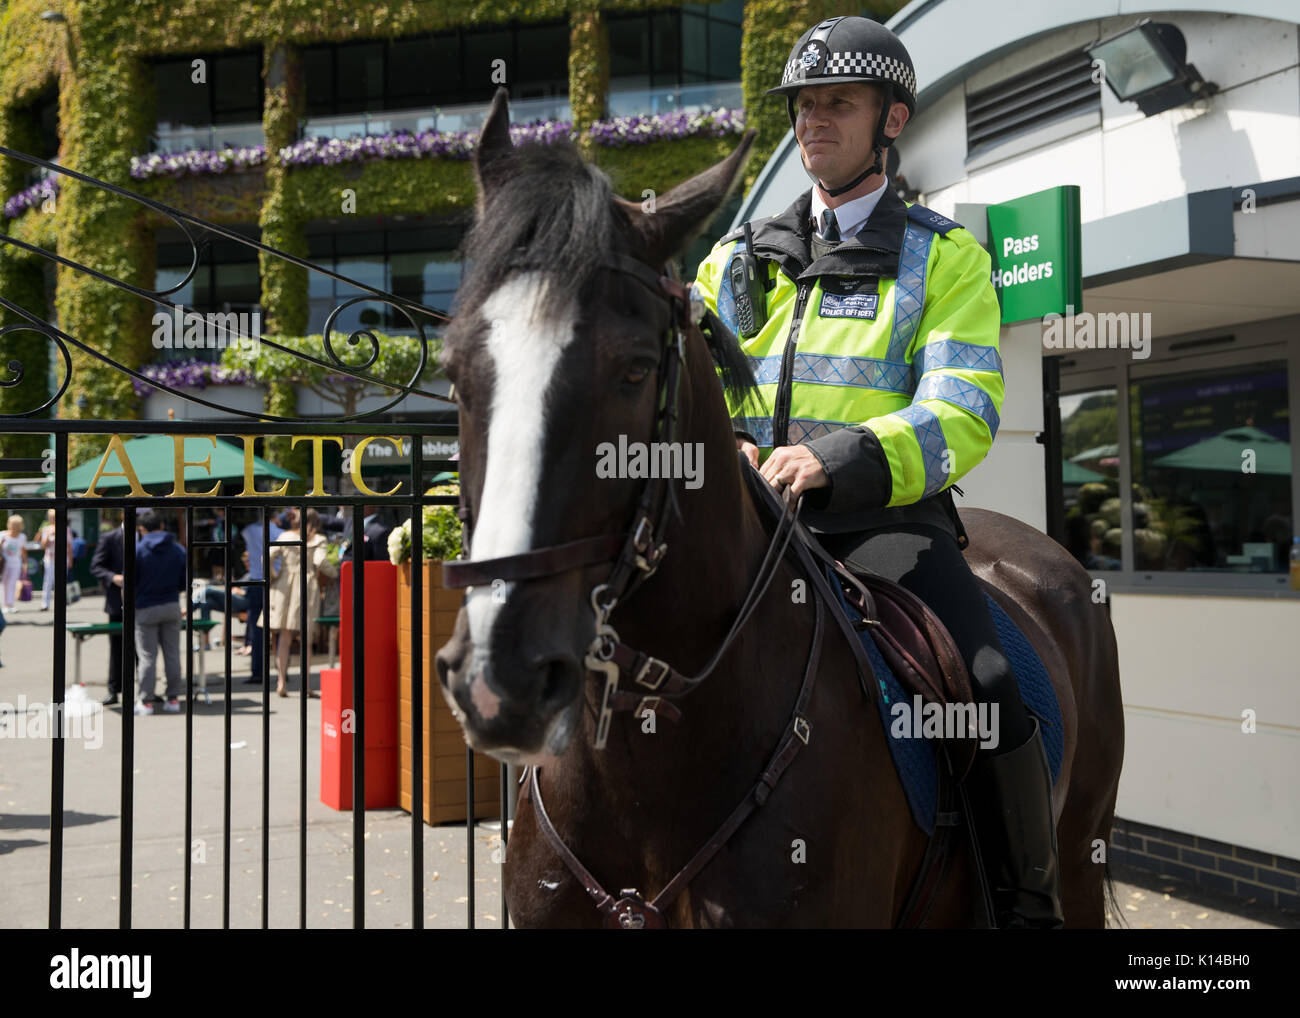 Horse mounted police outside Wimbledon Championships - Stock Image